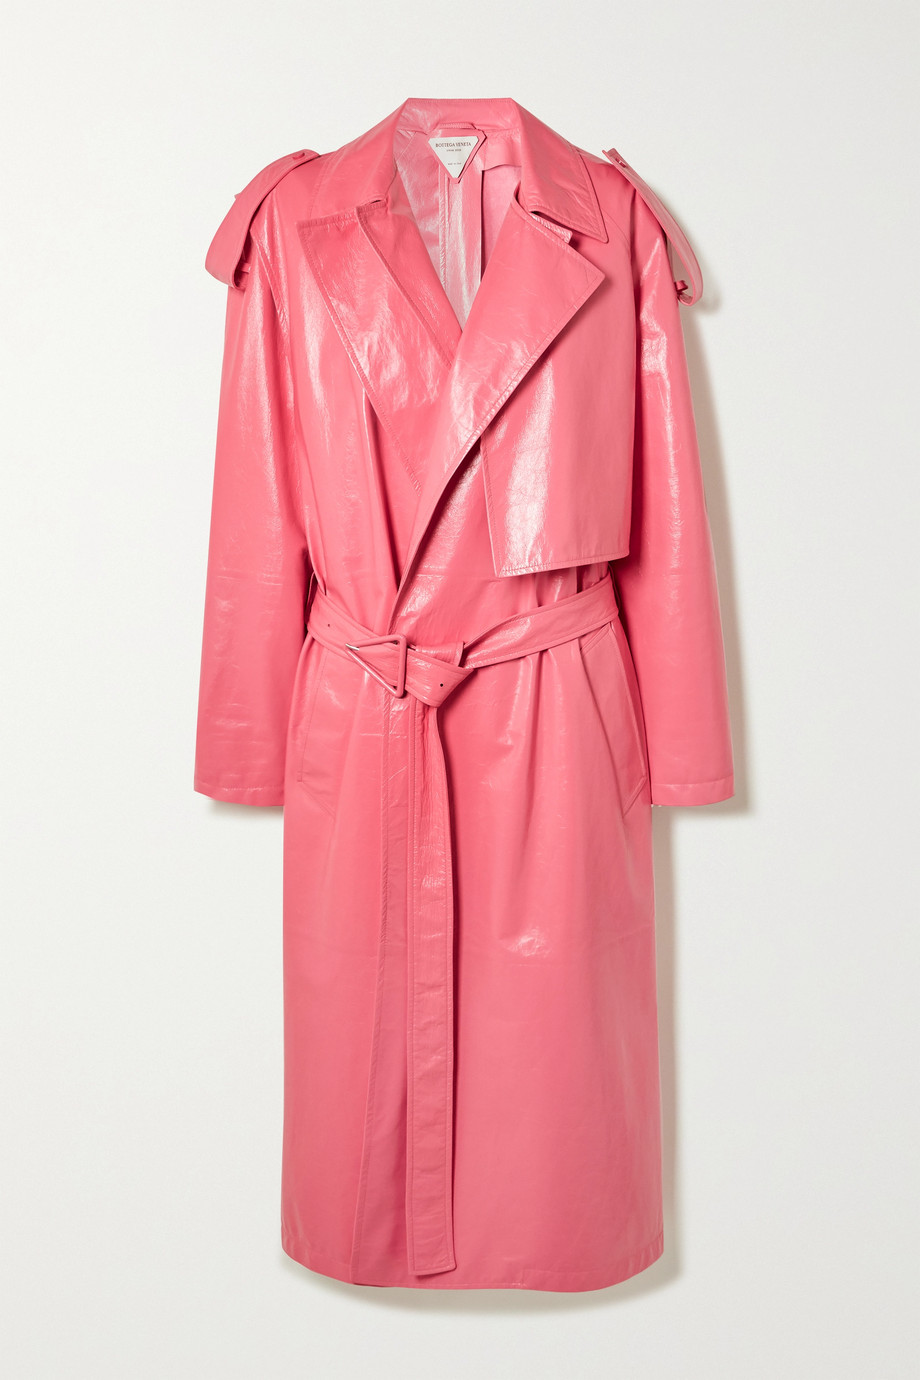 BOTTEGA VENETA Convertible crinkled glossed-leather trench coat